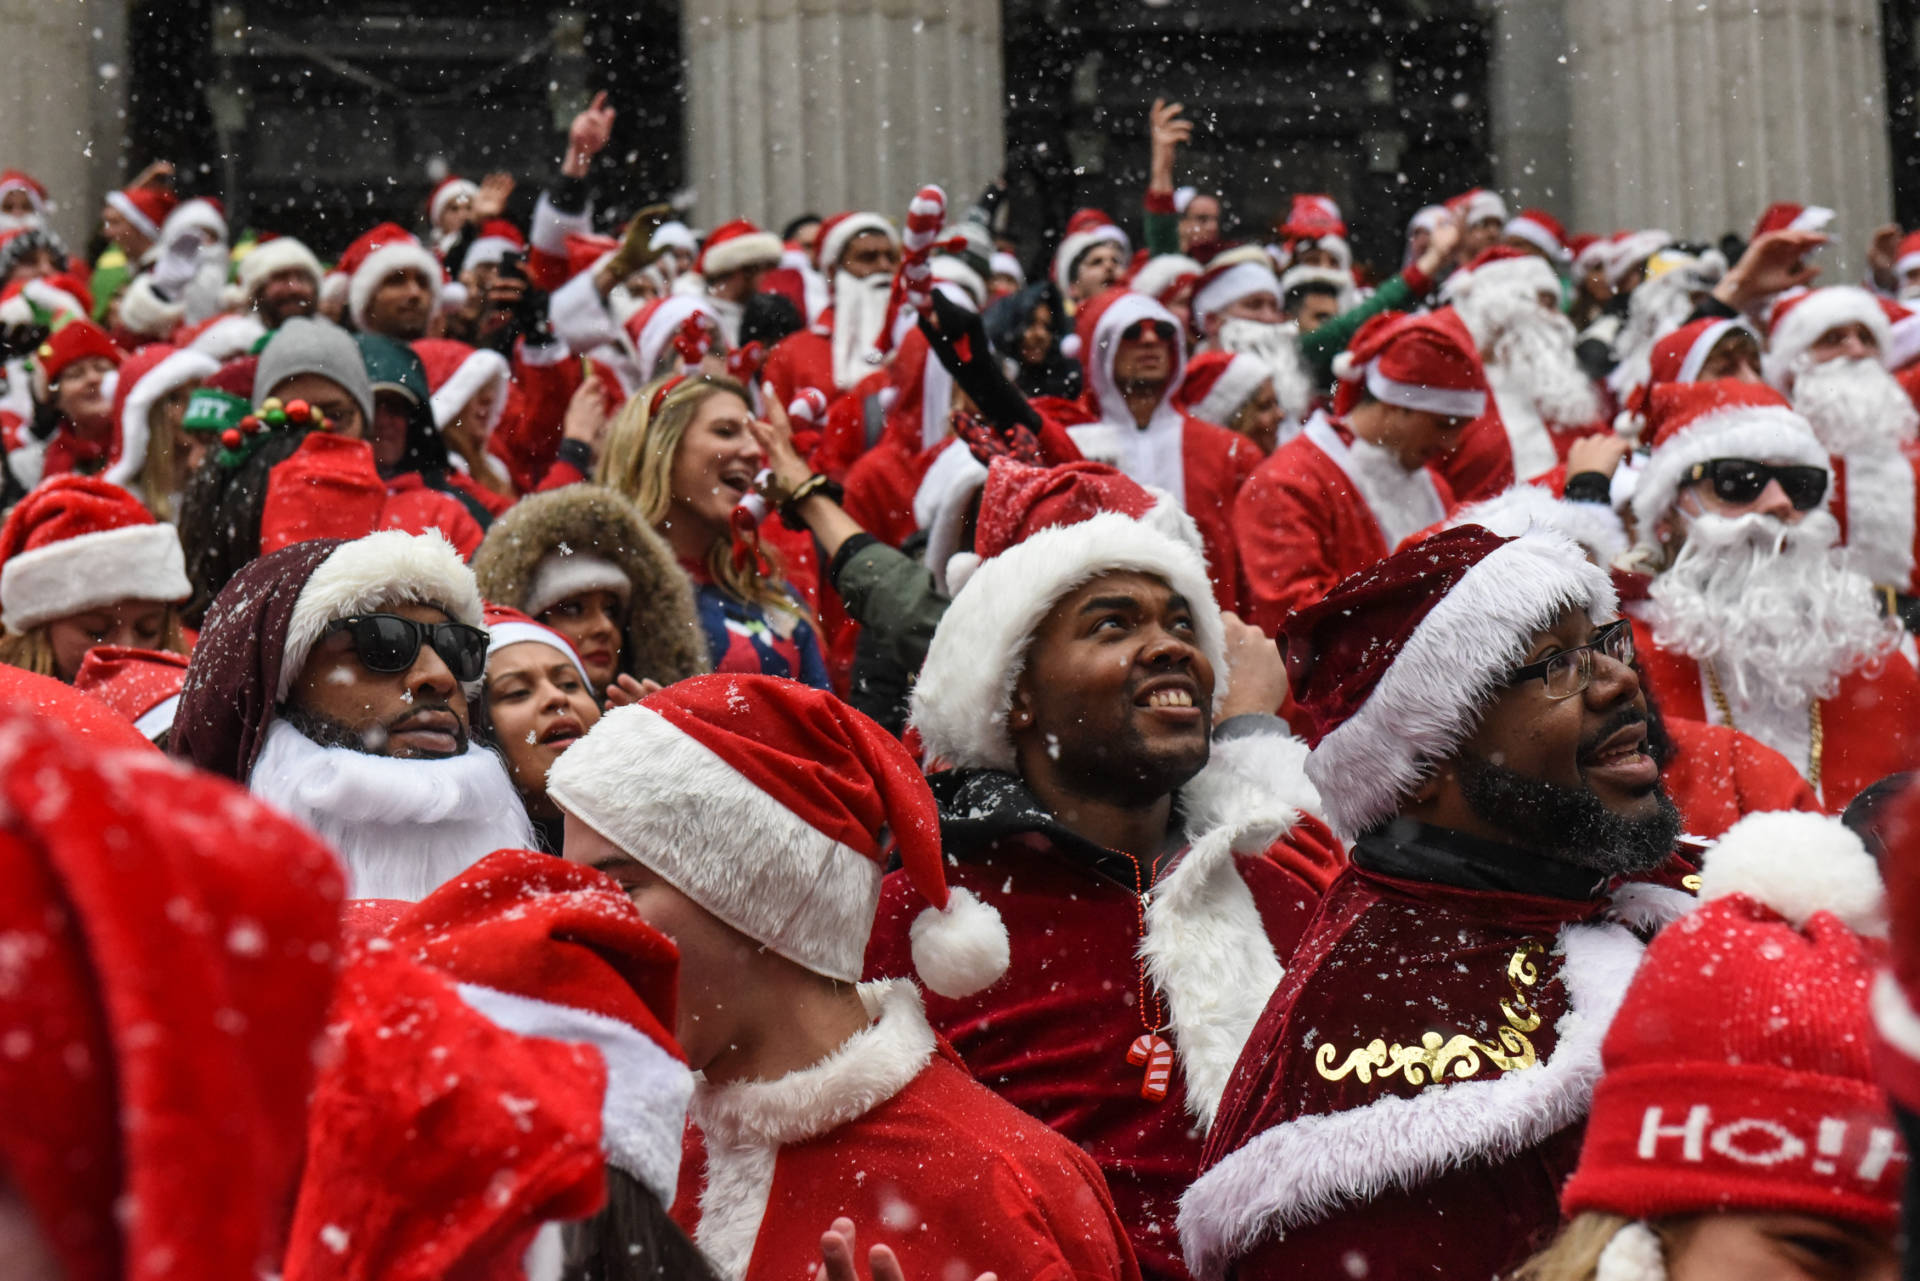 The annual bar crawl that is SantaCon is now celebrated in cities around the globe. But it got its start in San Francisco.  Stephanie Keith/Getty Images